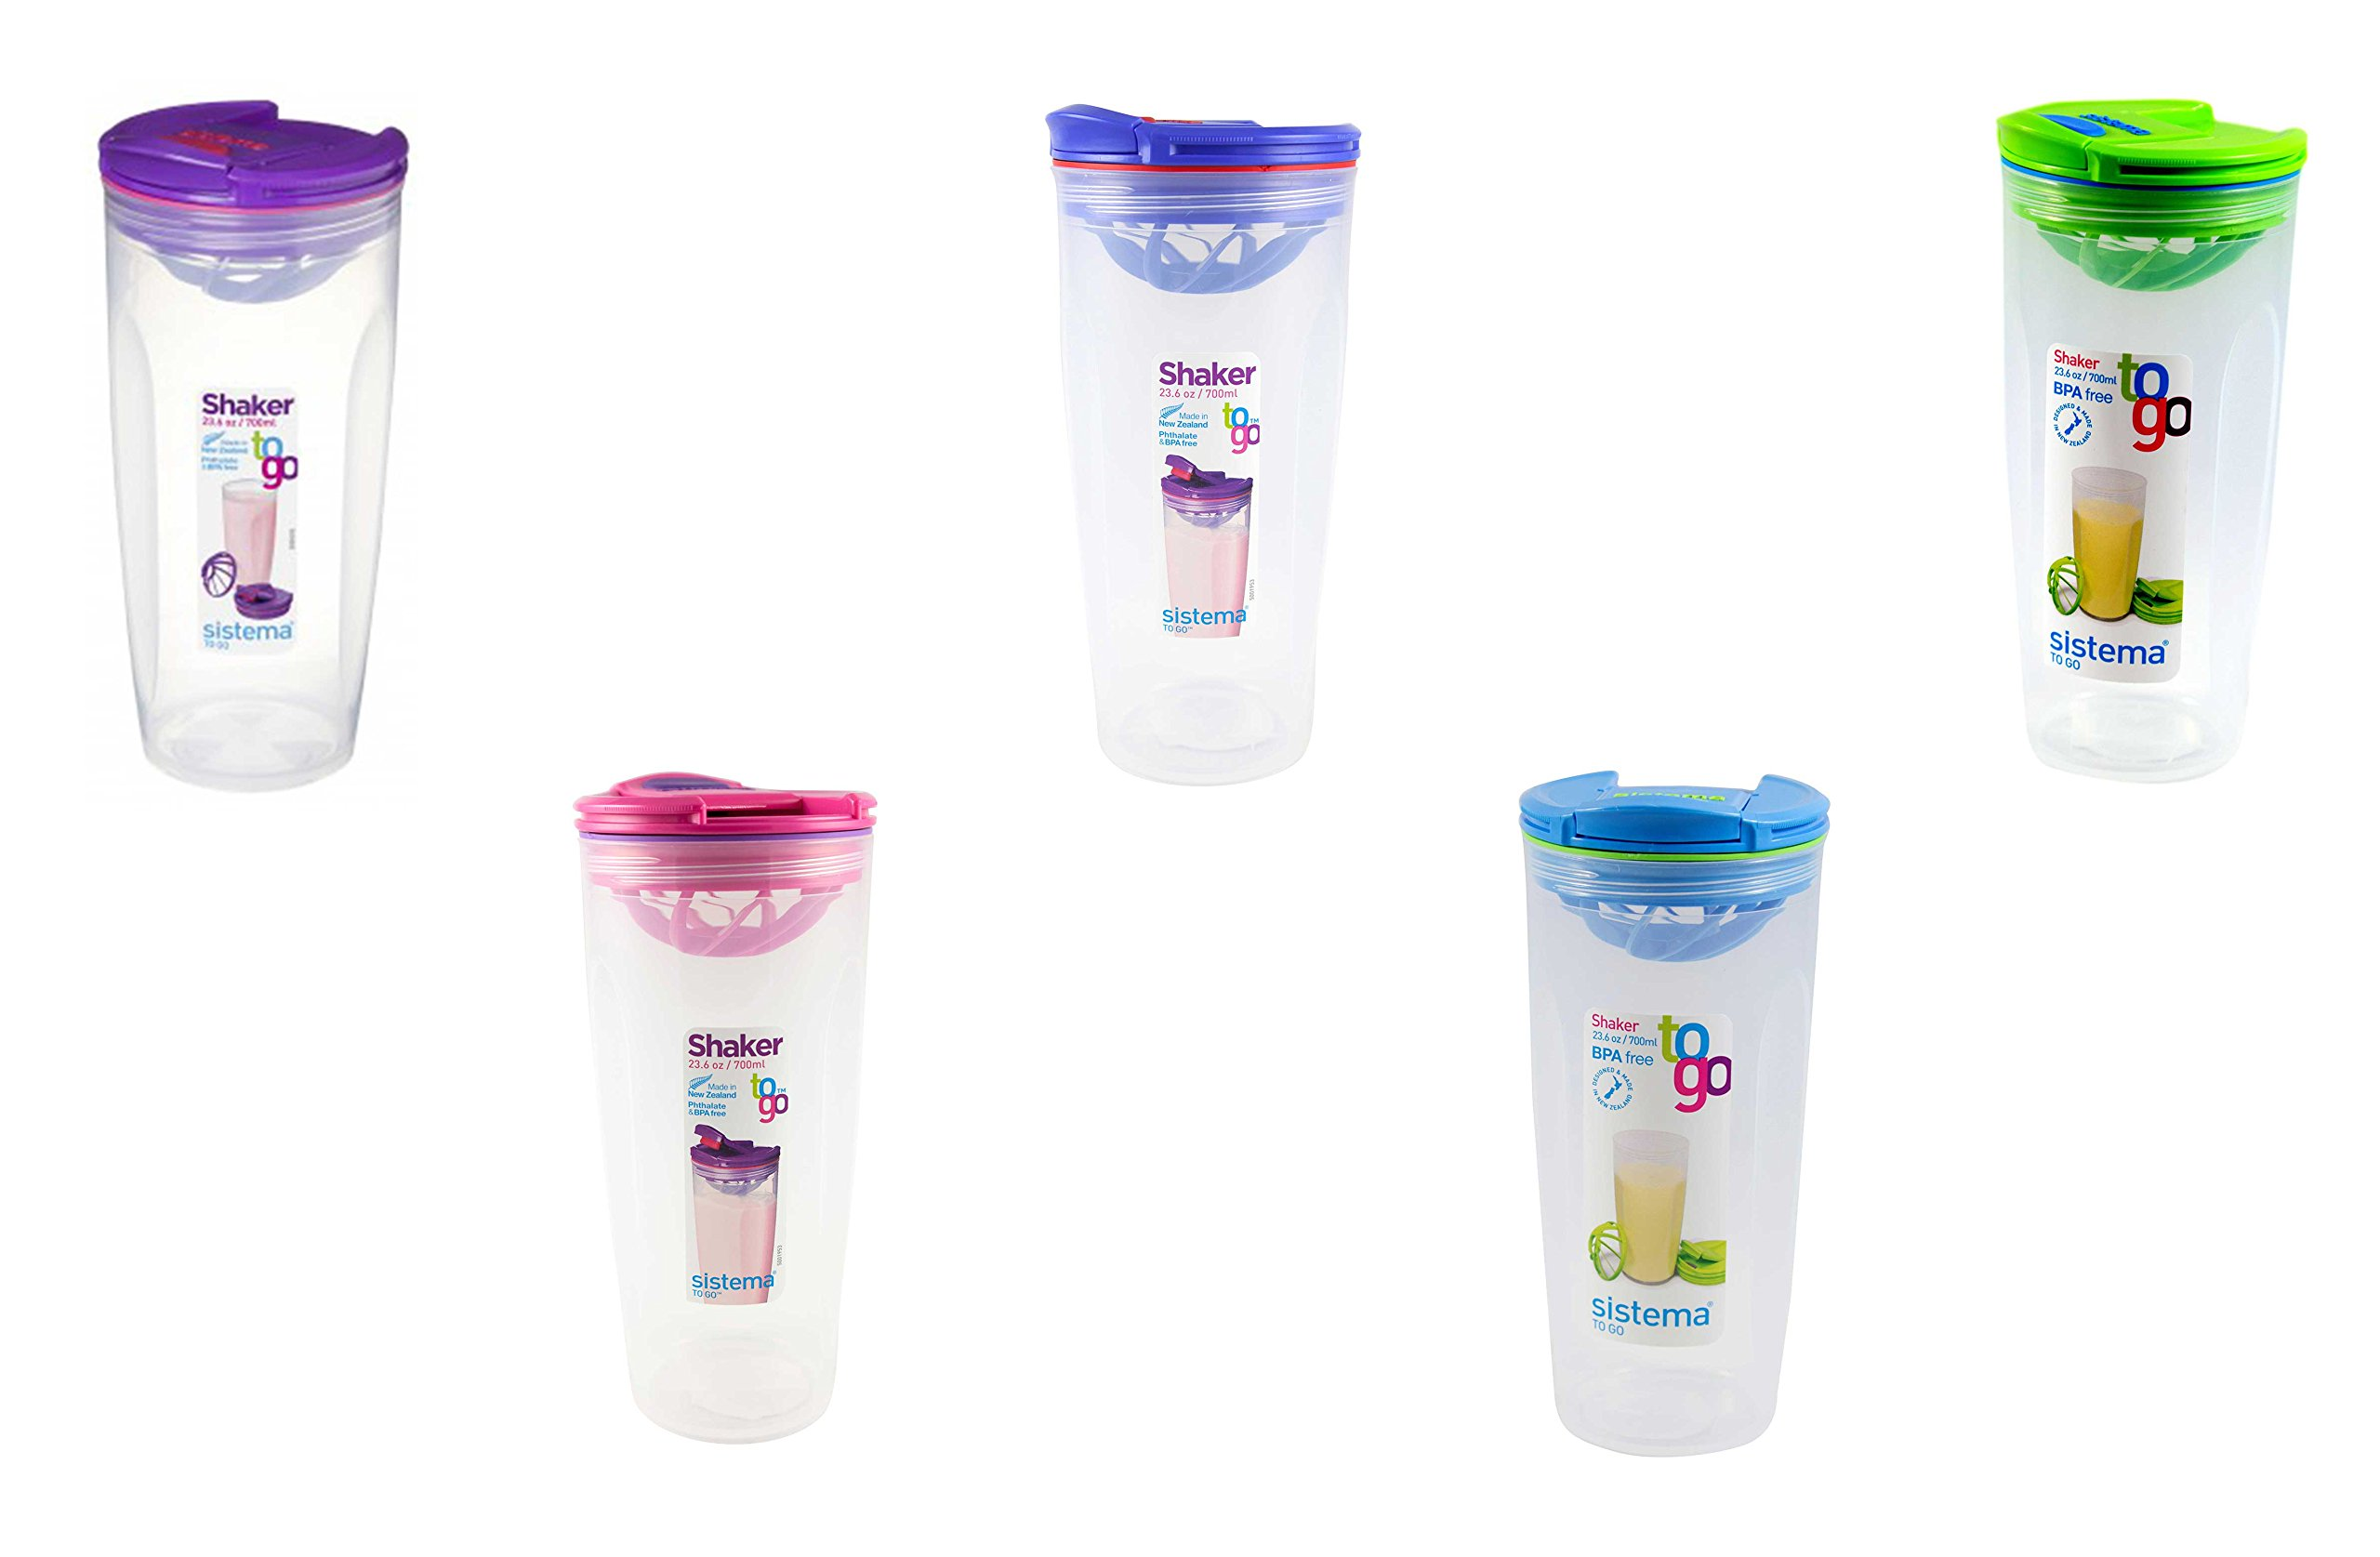 Sistema 23.6OZ / 700ML Shaker To Go, Colors Vary, 2-pack